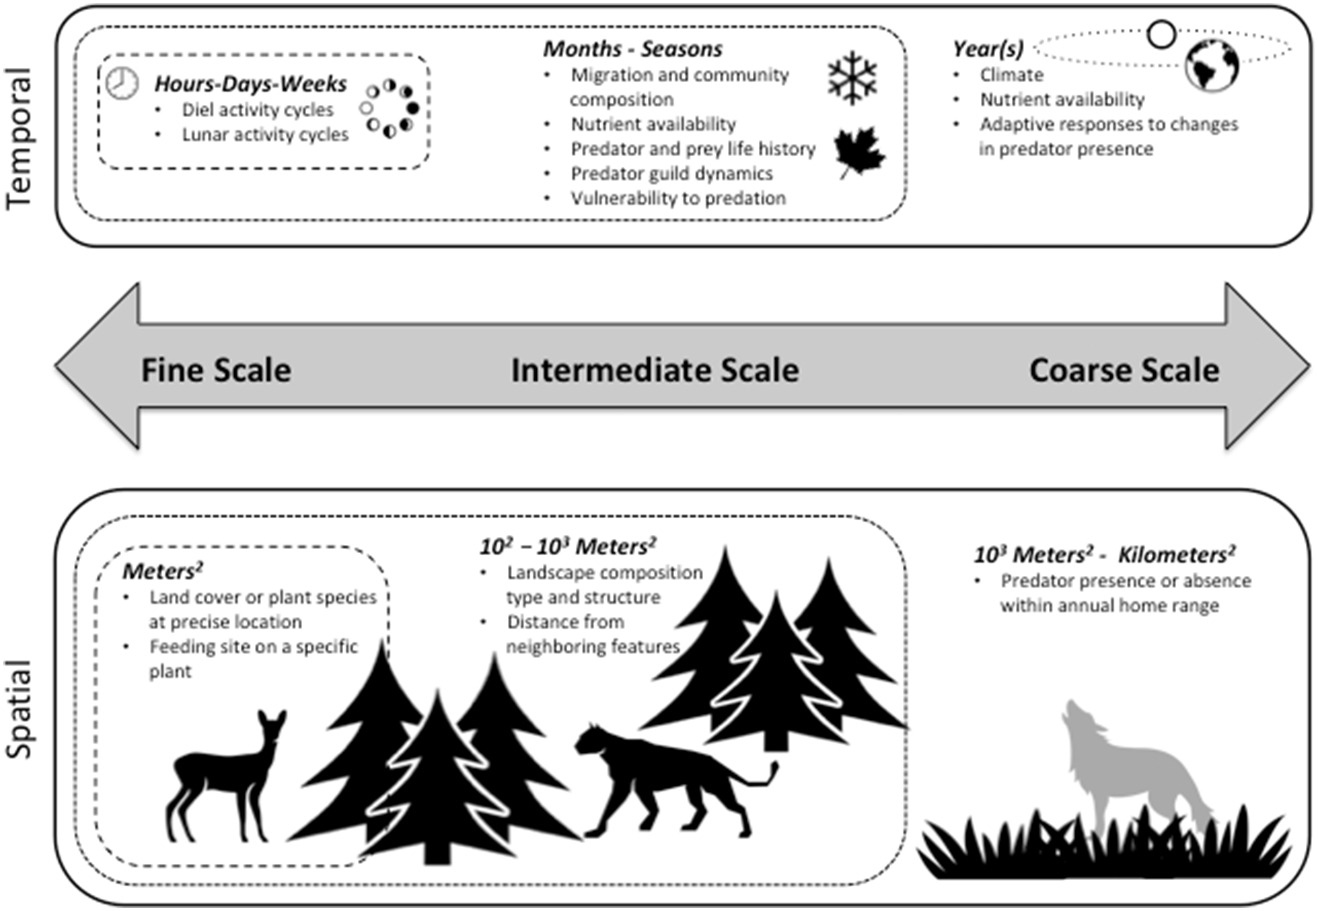 Fig. 2. Both temporal (top) and spatial (bottom) scales of risk effects may be considered along a continuum ranging from fine scale to coarse scale, the extent and resolution of which will vary depending on the study system and species. The spatial scales presented in this framework are roughly analogous to 4th-order selection (fine scale), 3rd-order selection (intermediate scale), and 2nd-order selection (coarse scale) proposed by  Johnson (1980) . The appropriate scale(s) of analysis will depend on the goals of the study, resolution of the data, and practical limitations.